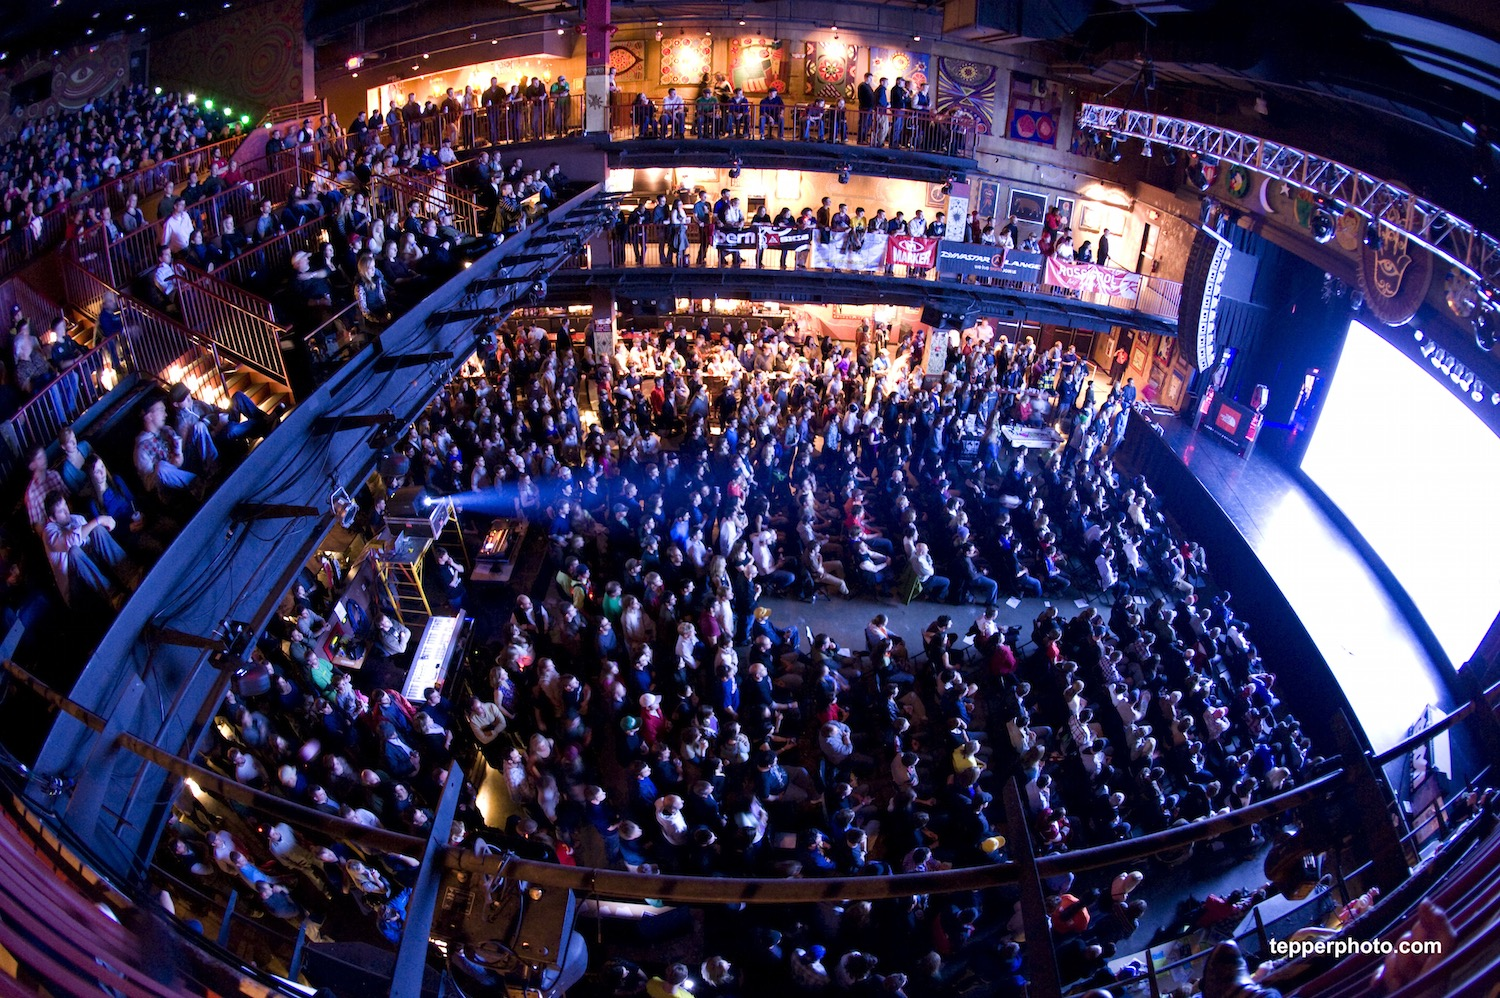 House of blues boston pitchh for Housse of blues